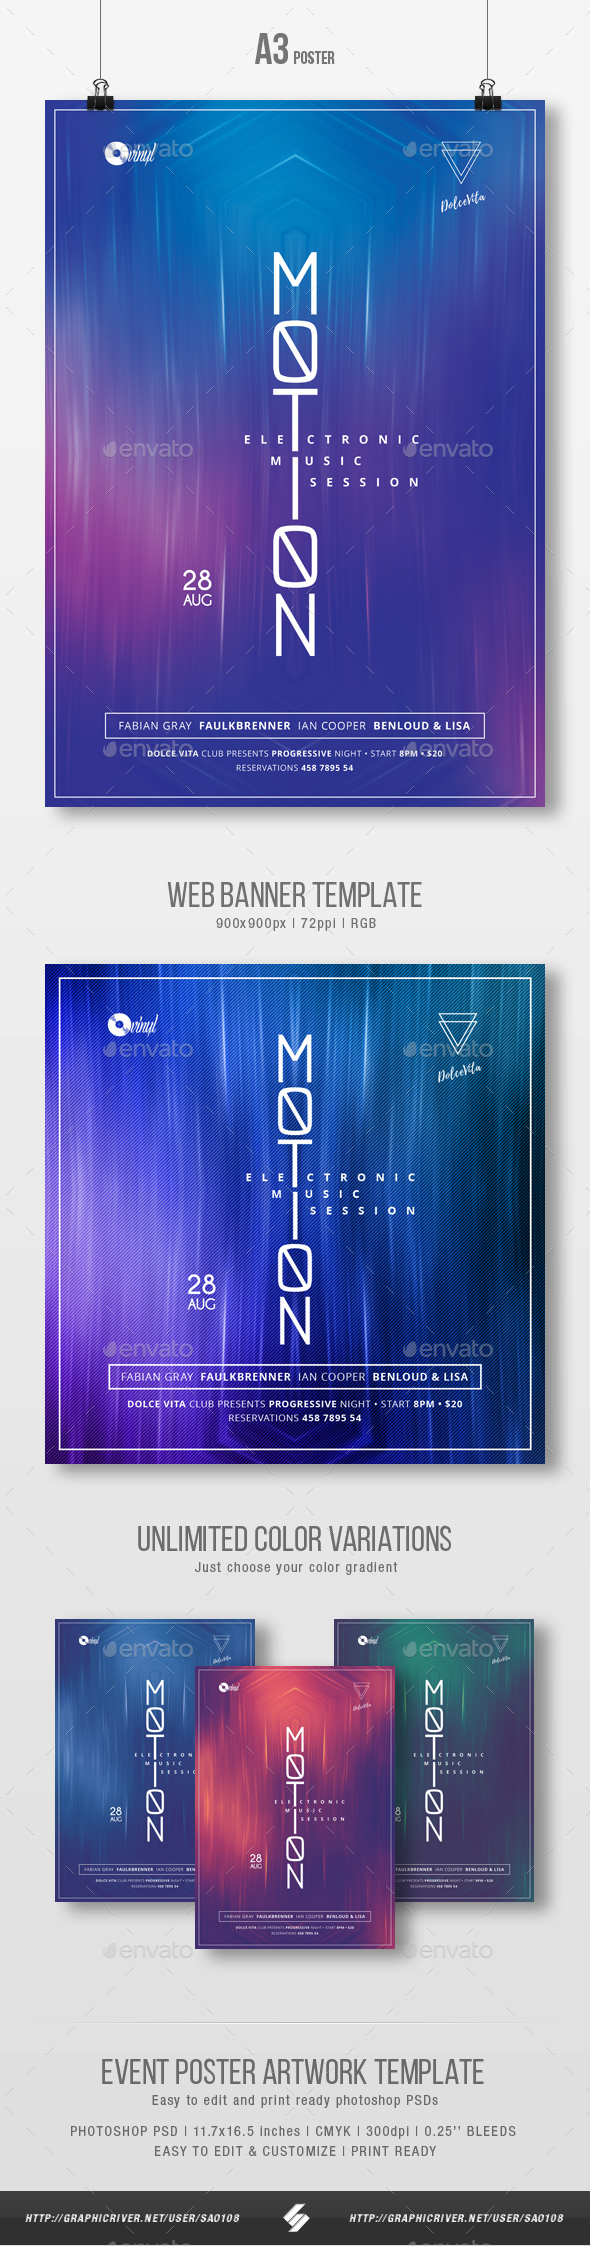 Motion - Minimal Party Flyer / Poster Template A3 - Clubs & Parties Events